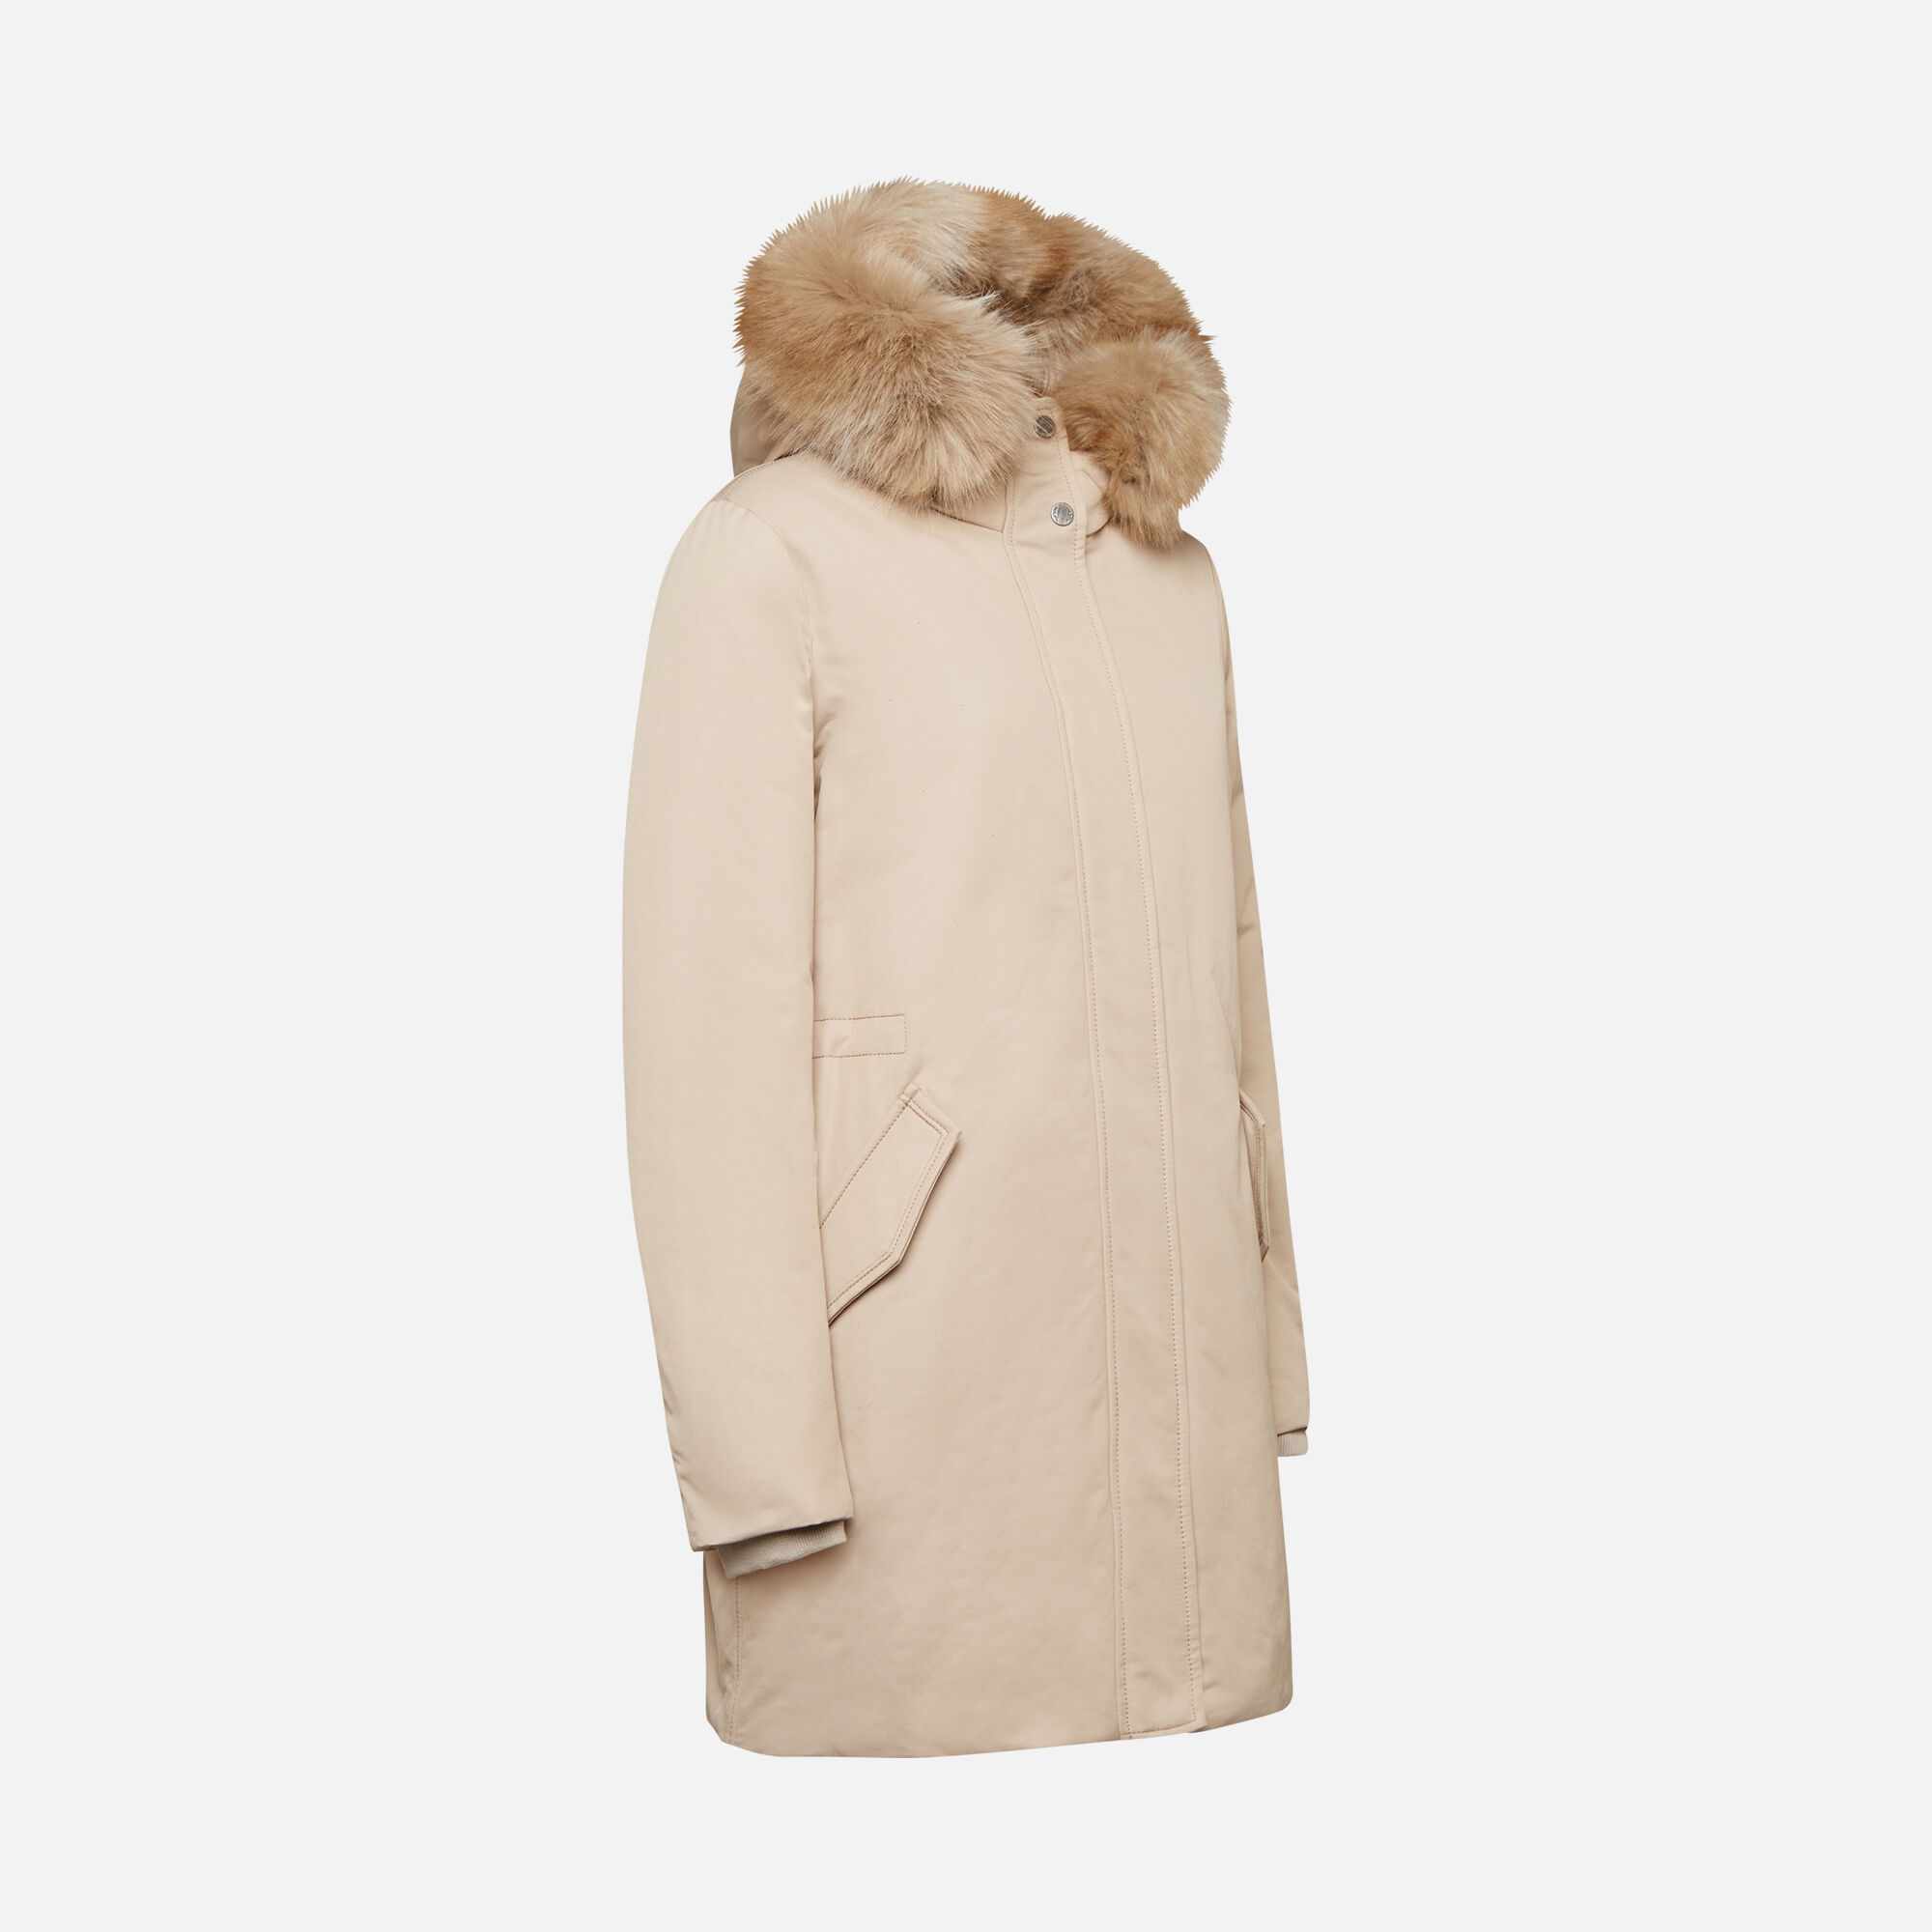 Geox CARUM Woman: Light taupe Jacket | Geox ® Official Store